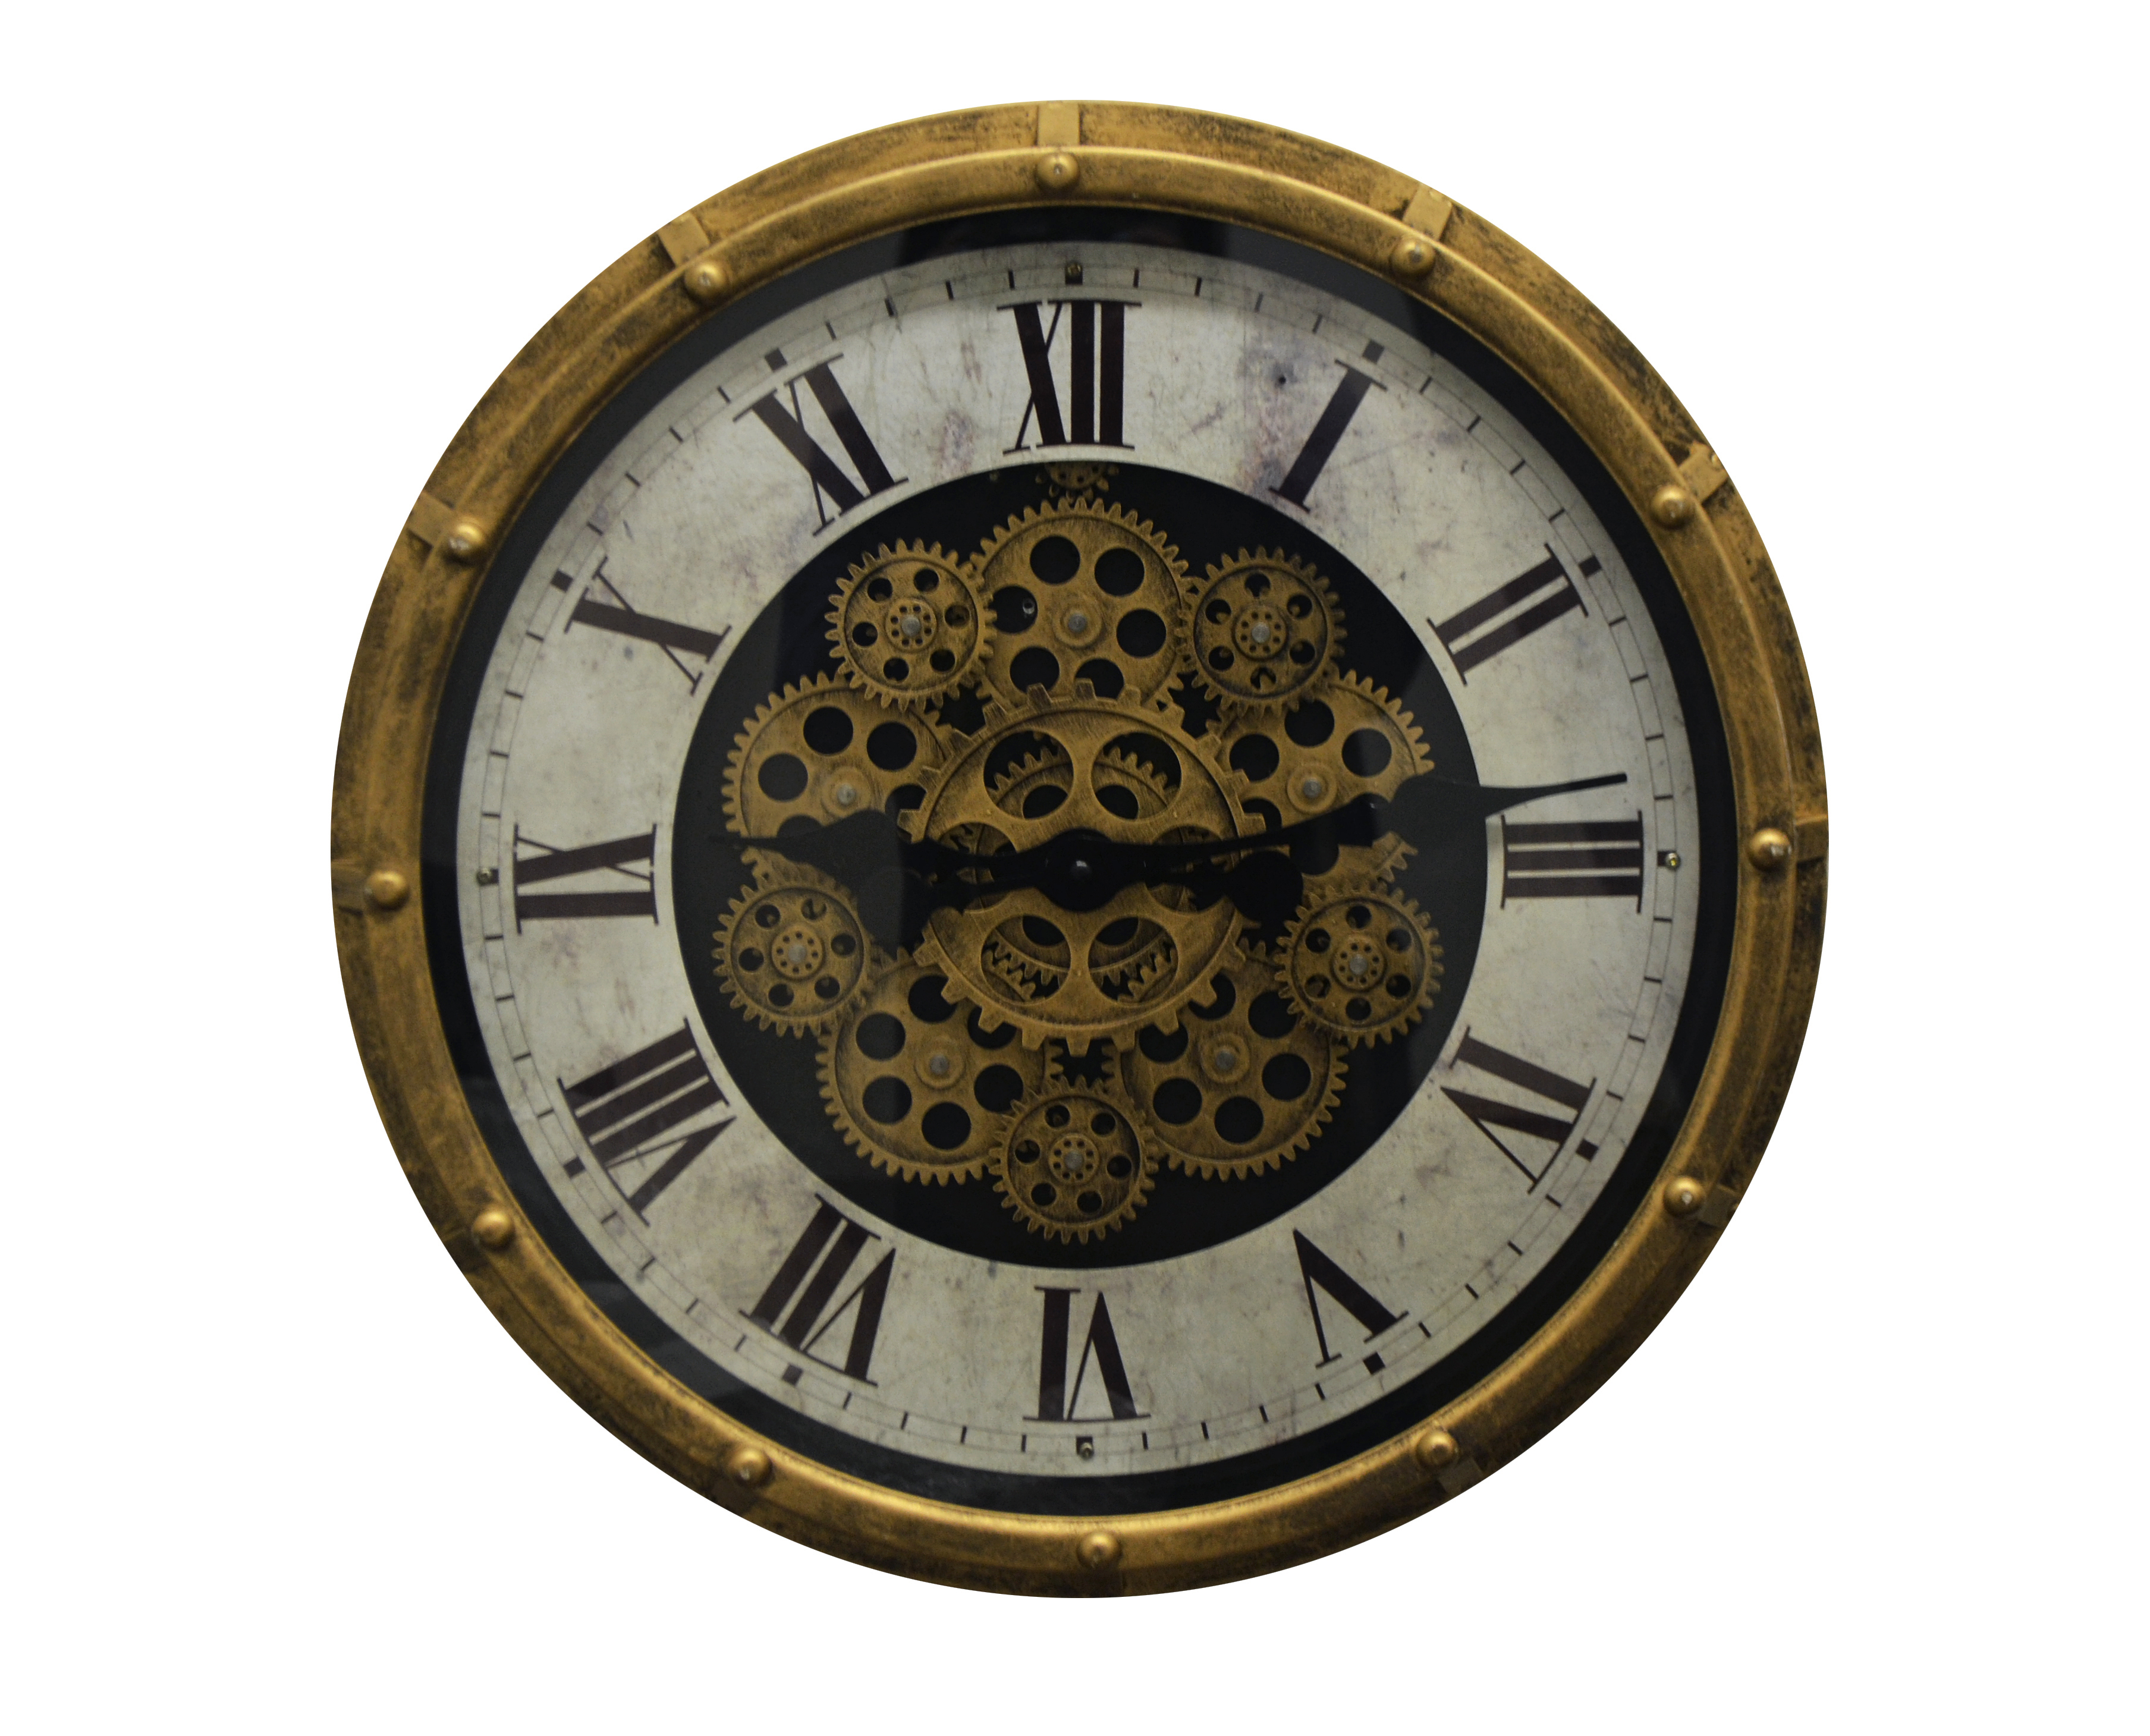 Vintage Steampunk Style Gold & Black Metal Wall Clock Moving Gears & Marble Texture Clock Face